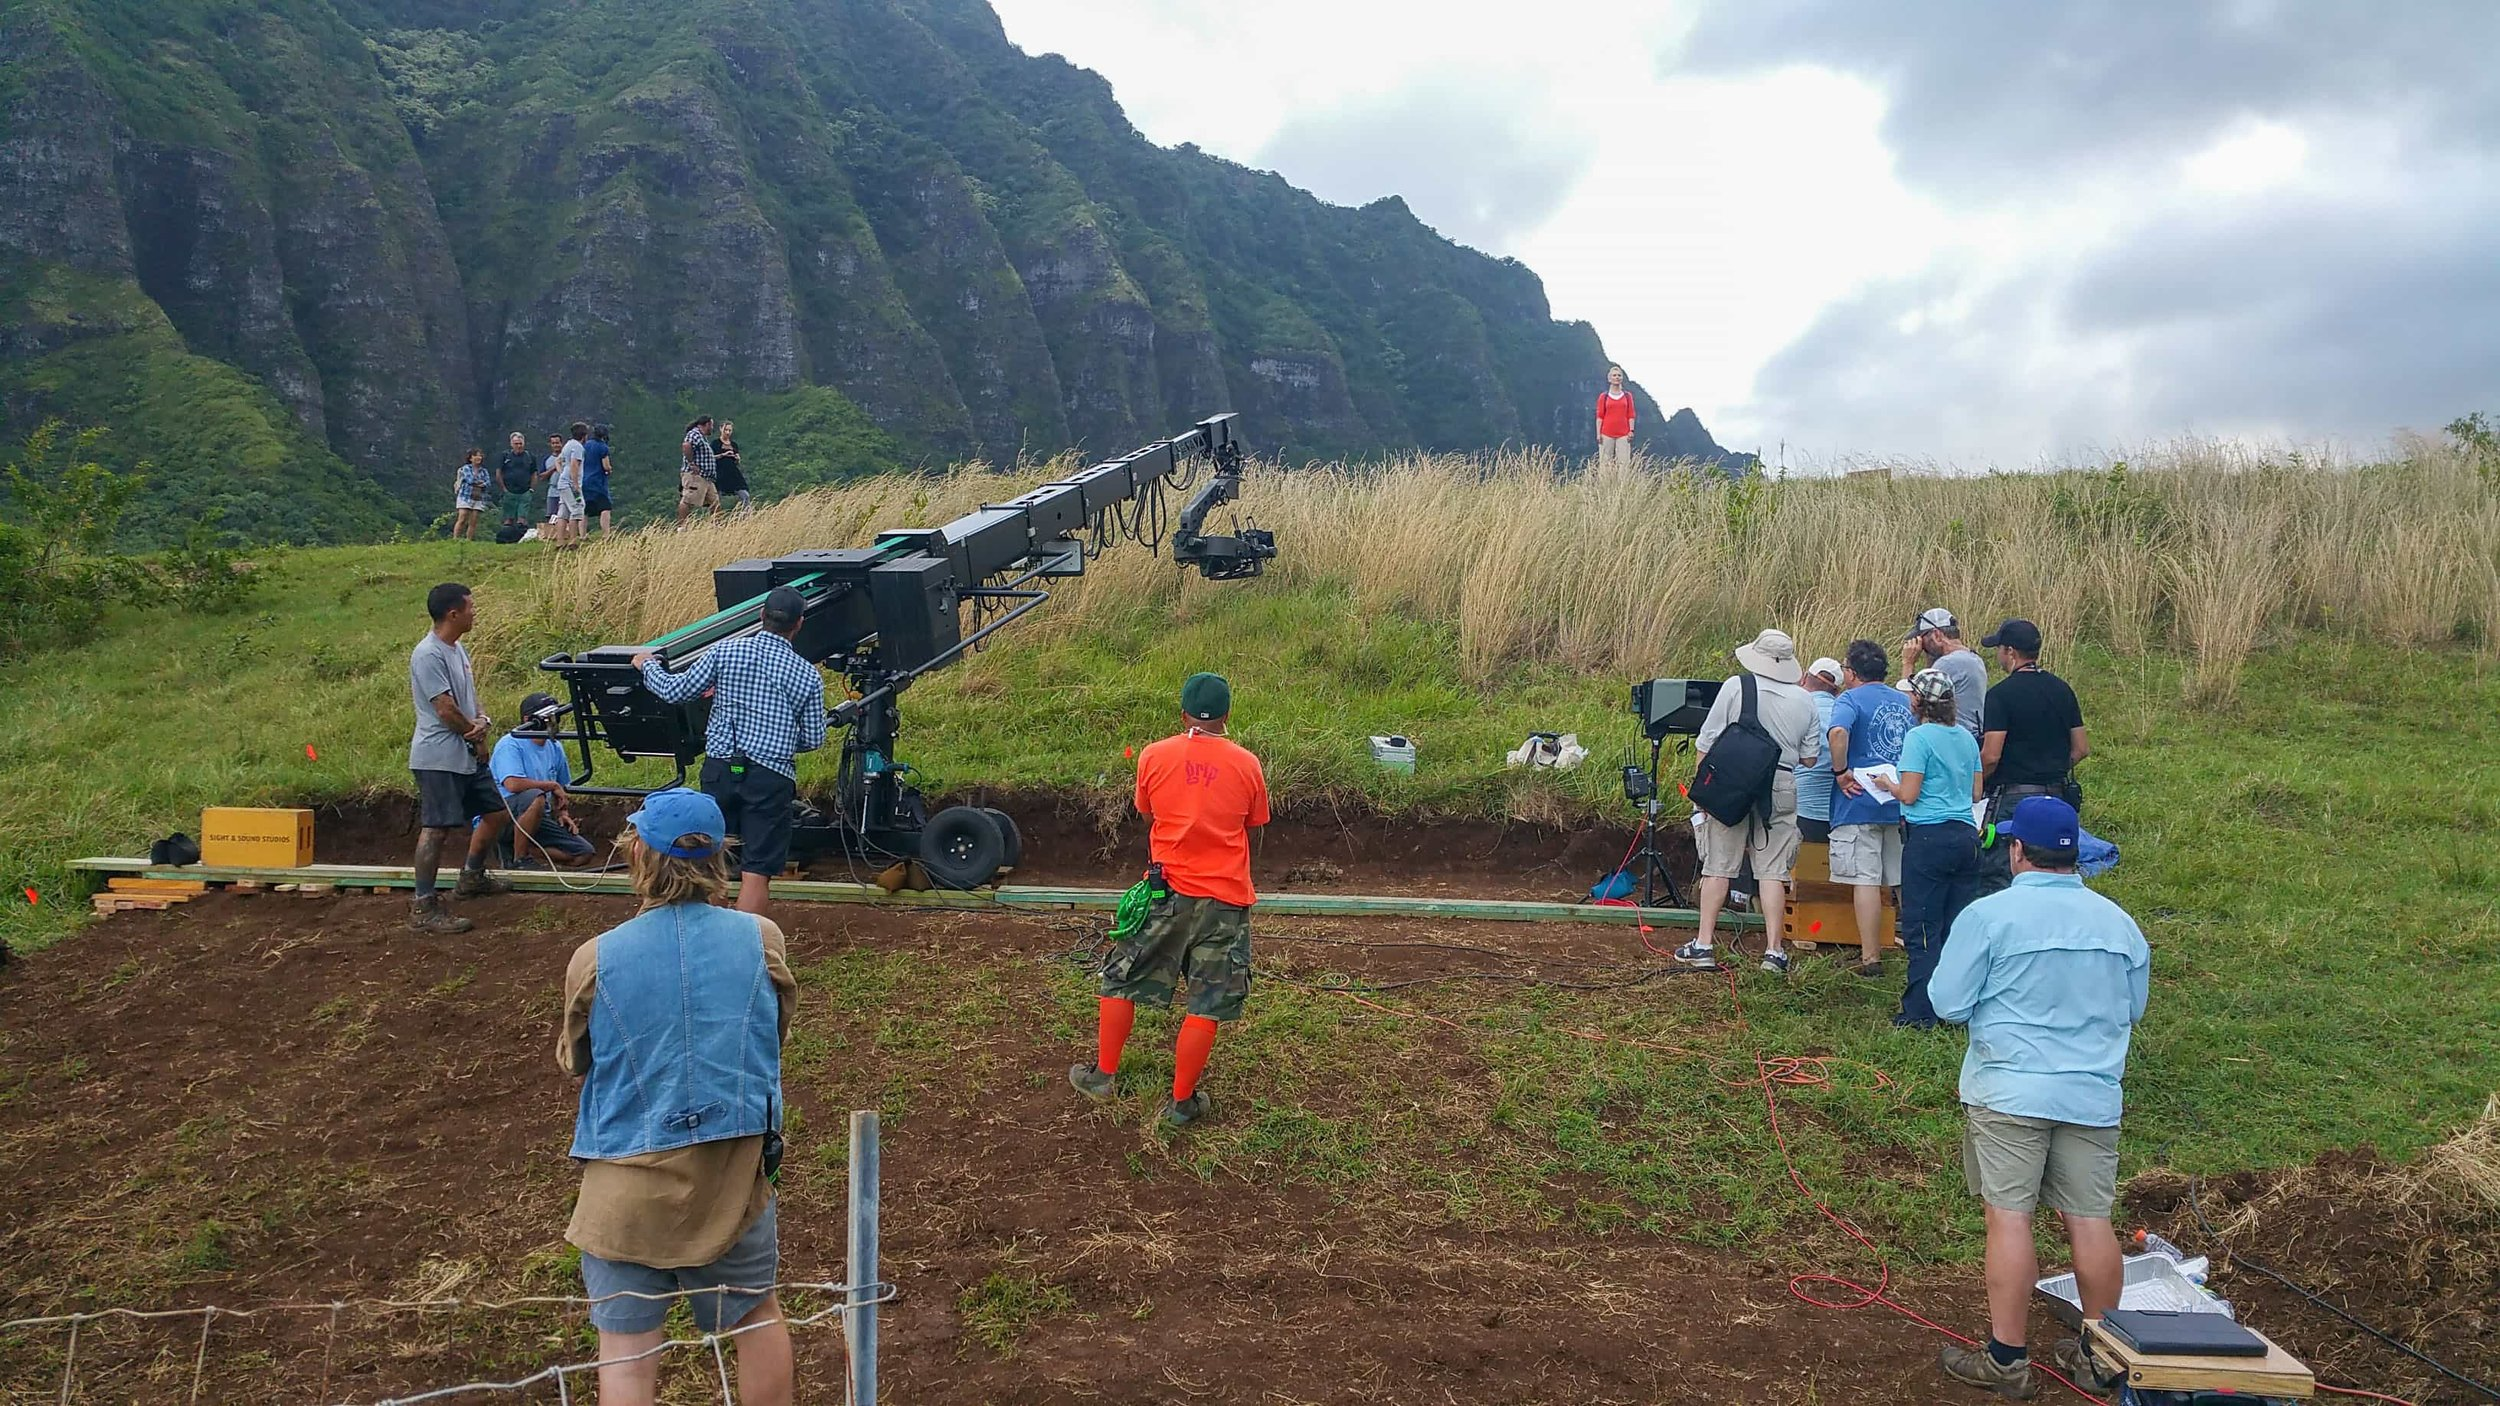 TechnoJib in Kualoa Ranch